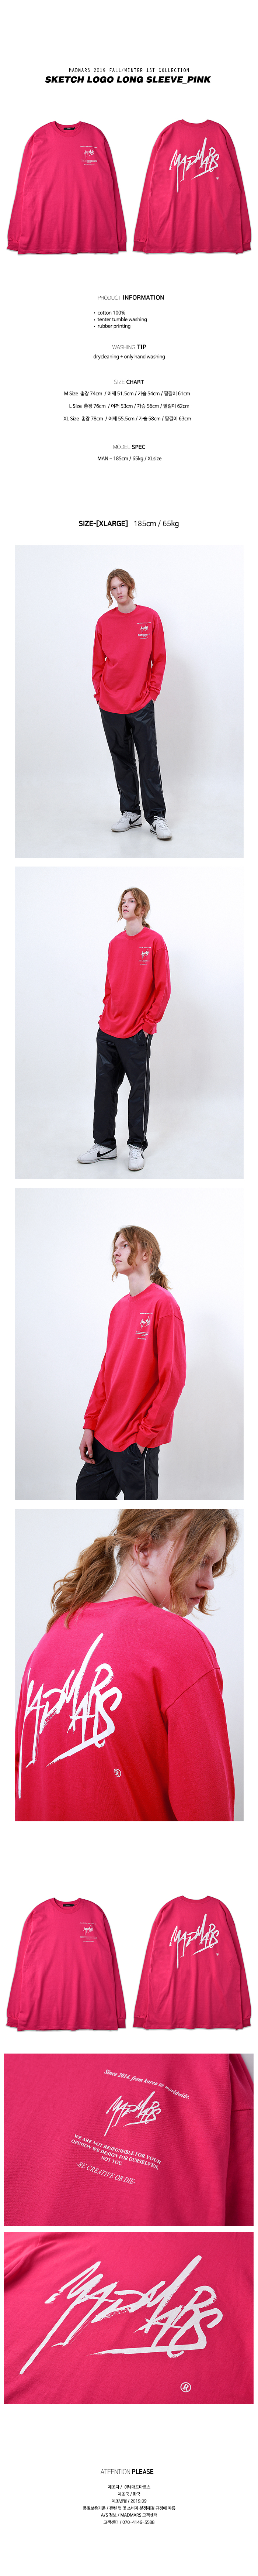 SKETCH LOGO LONG SLEEVE_PINK.jpg